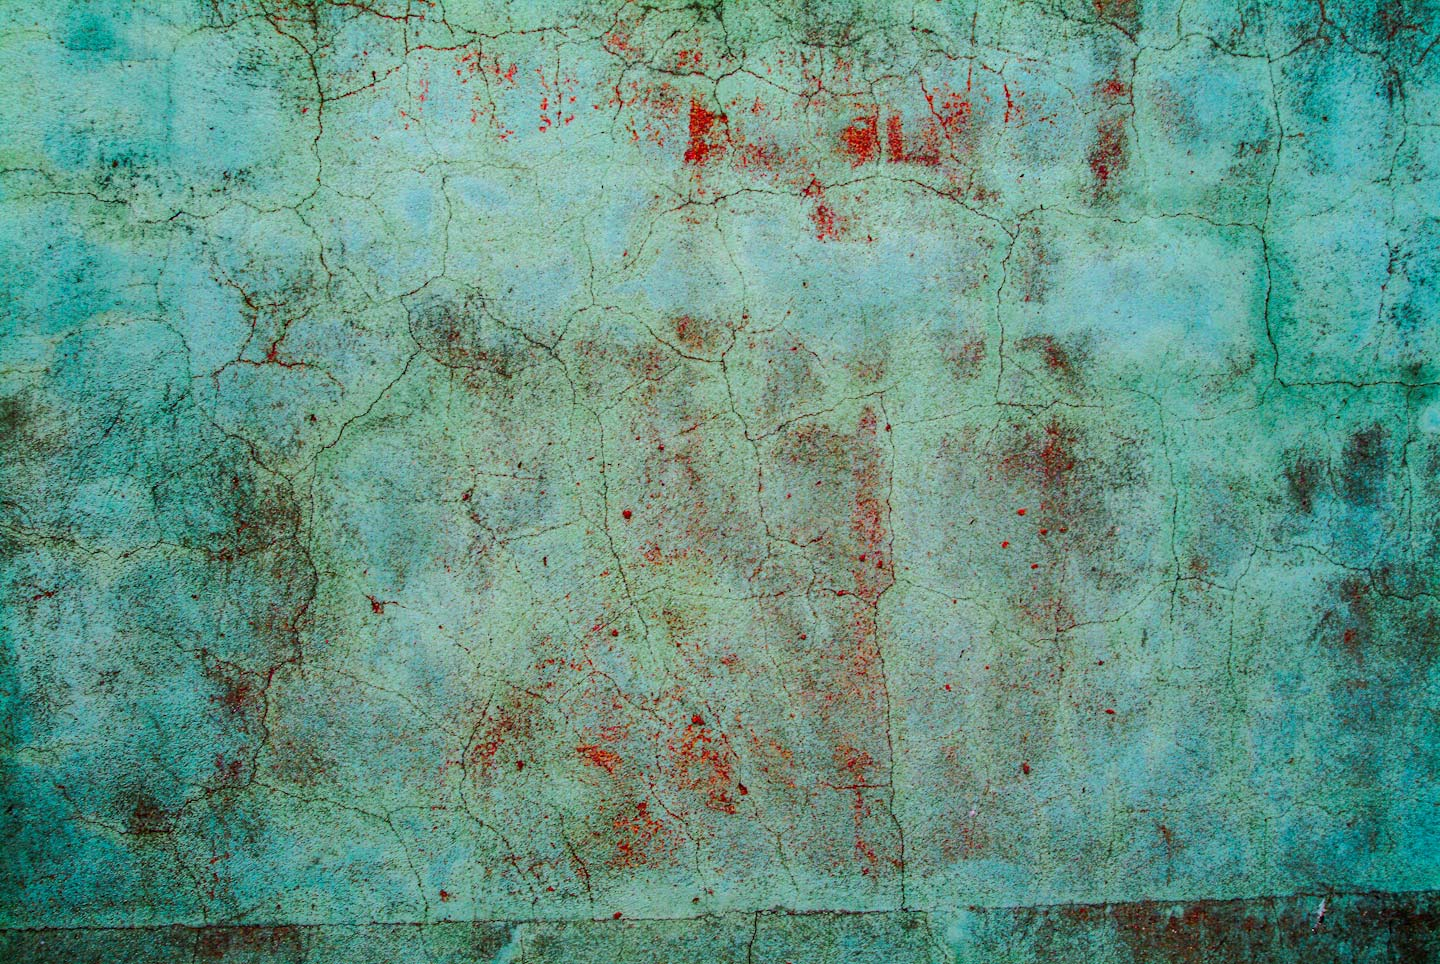 Portugal,_Tevira_green_painted_wall-80.jpg